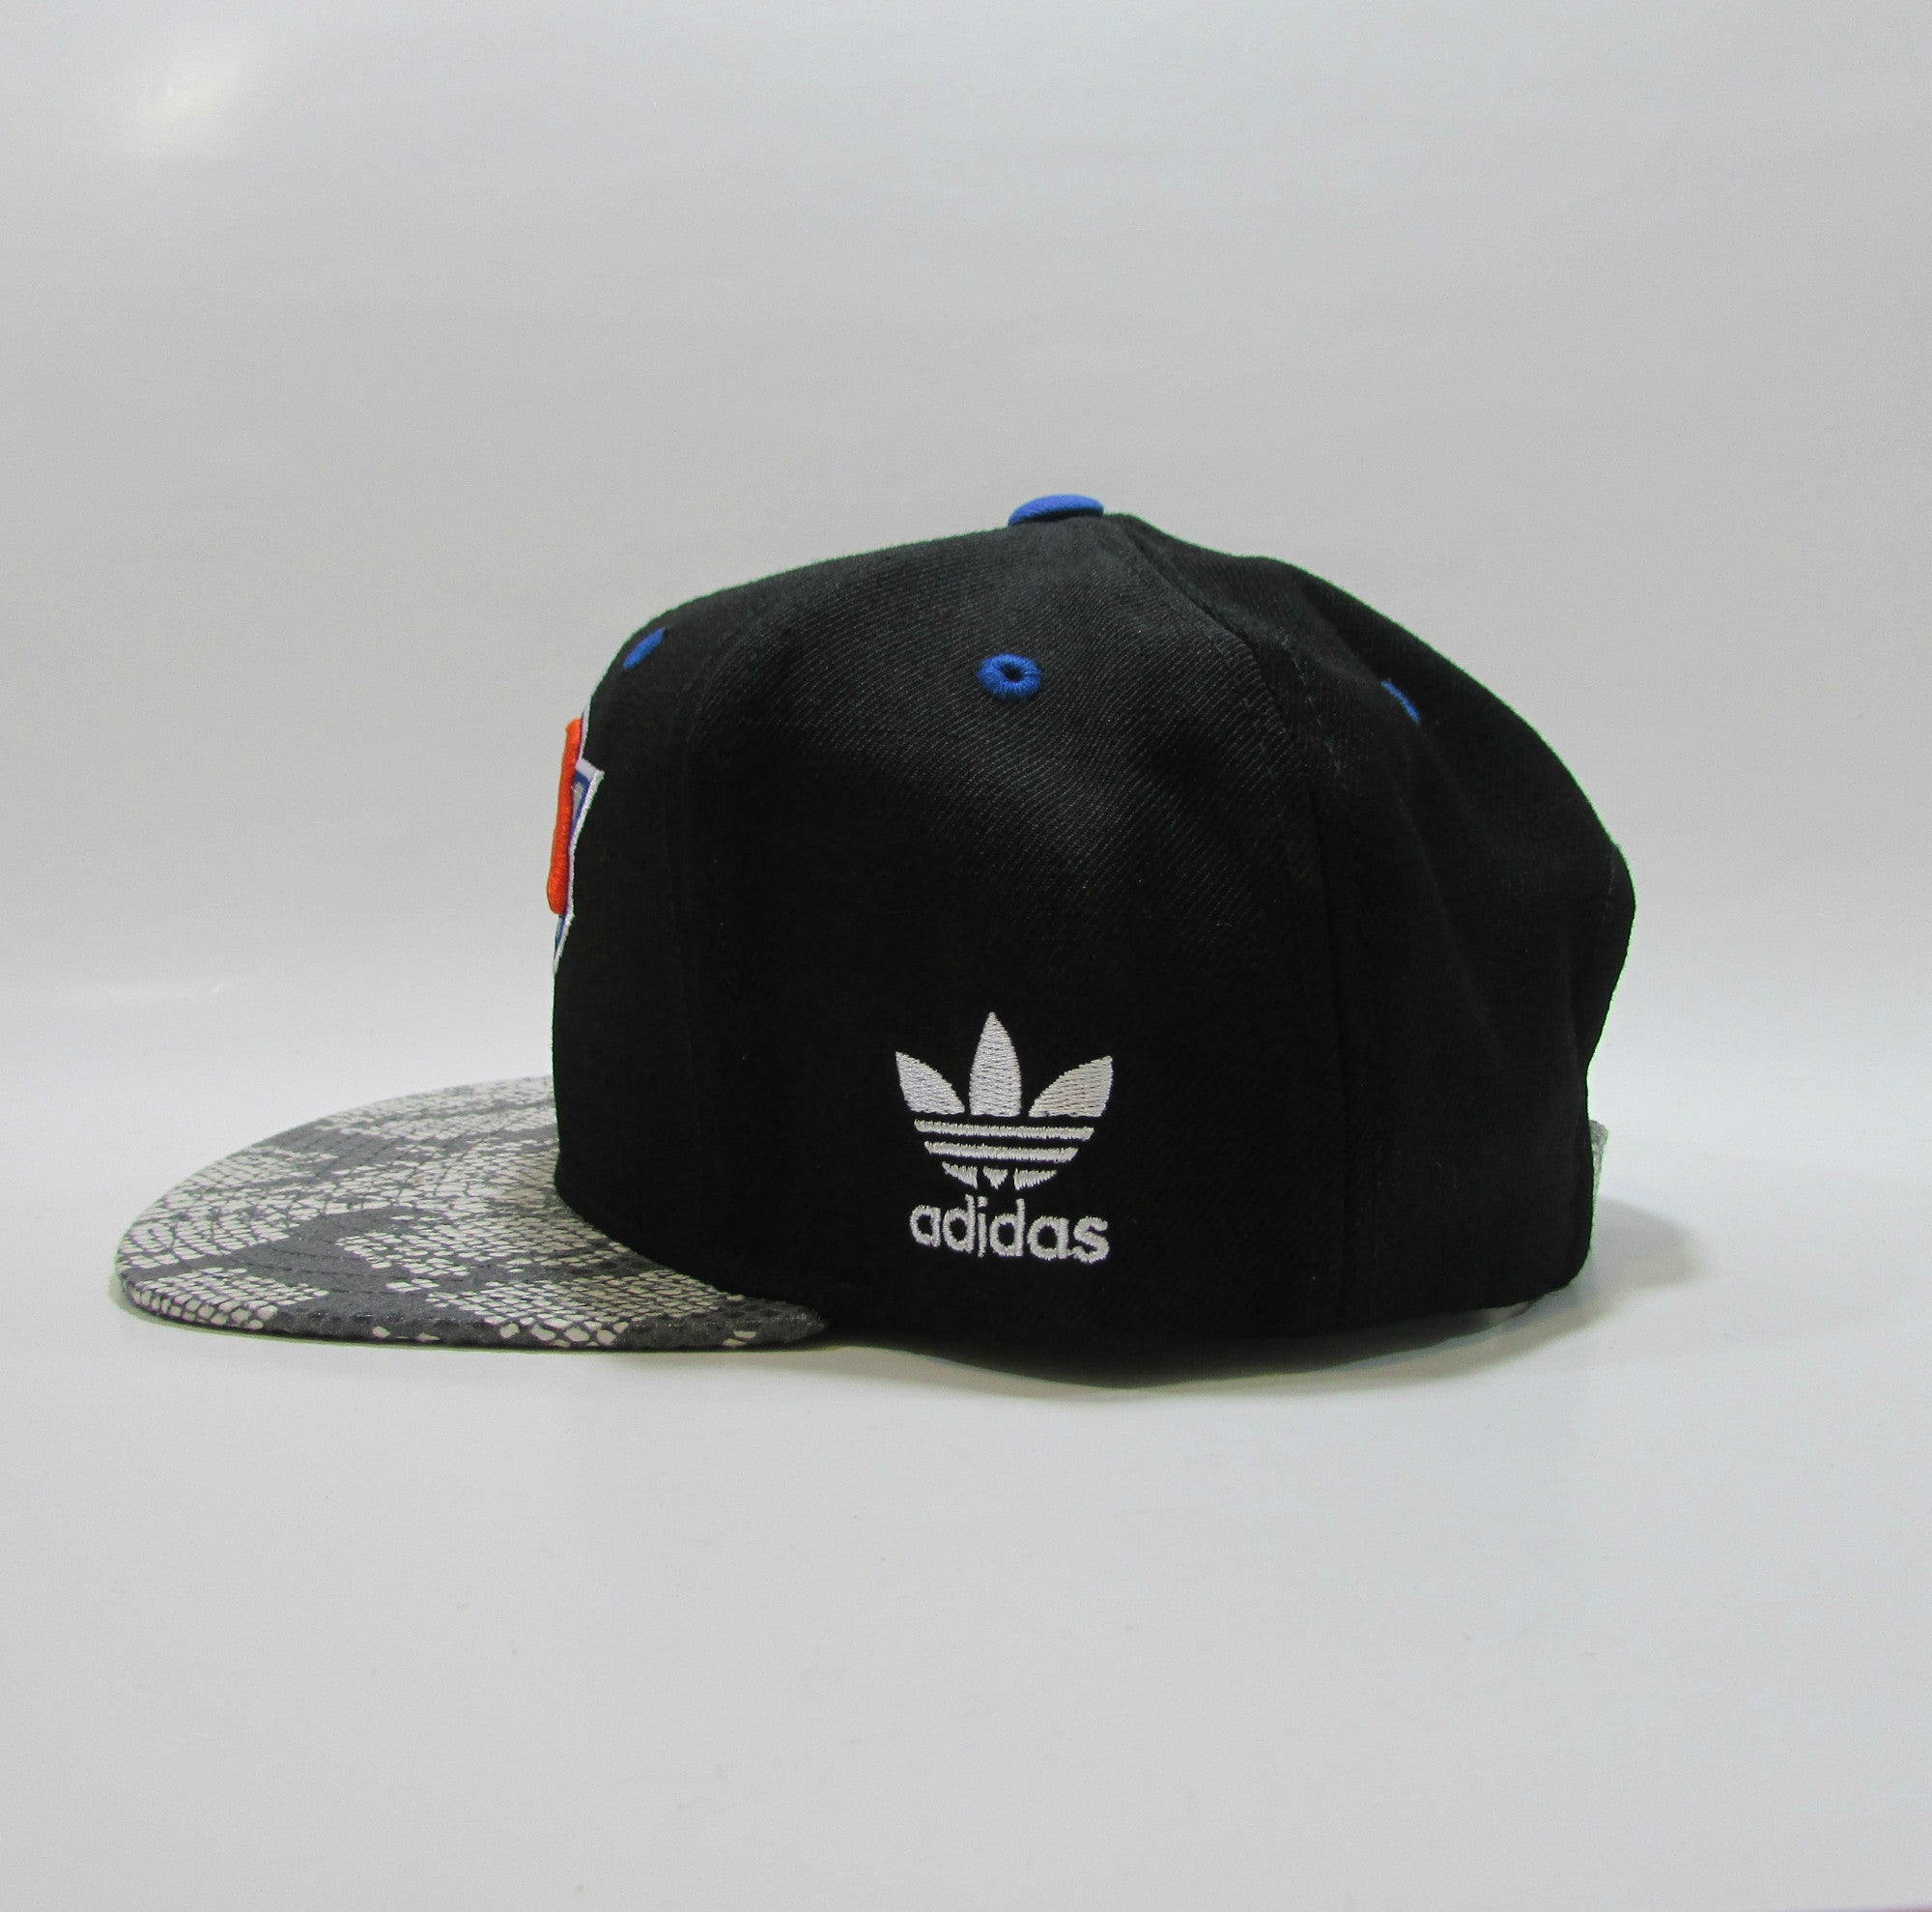 New York Knicks NBA Snakeskin Leather Snapback Hat by Adidas